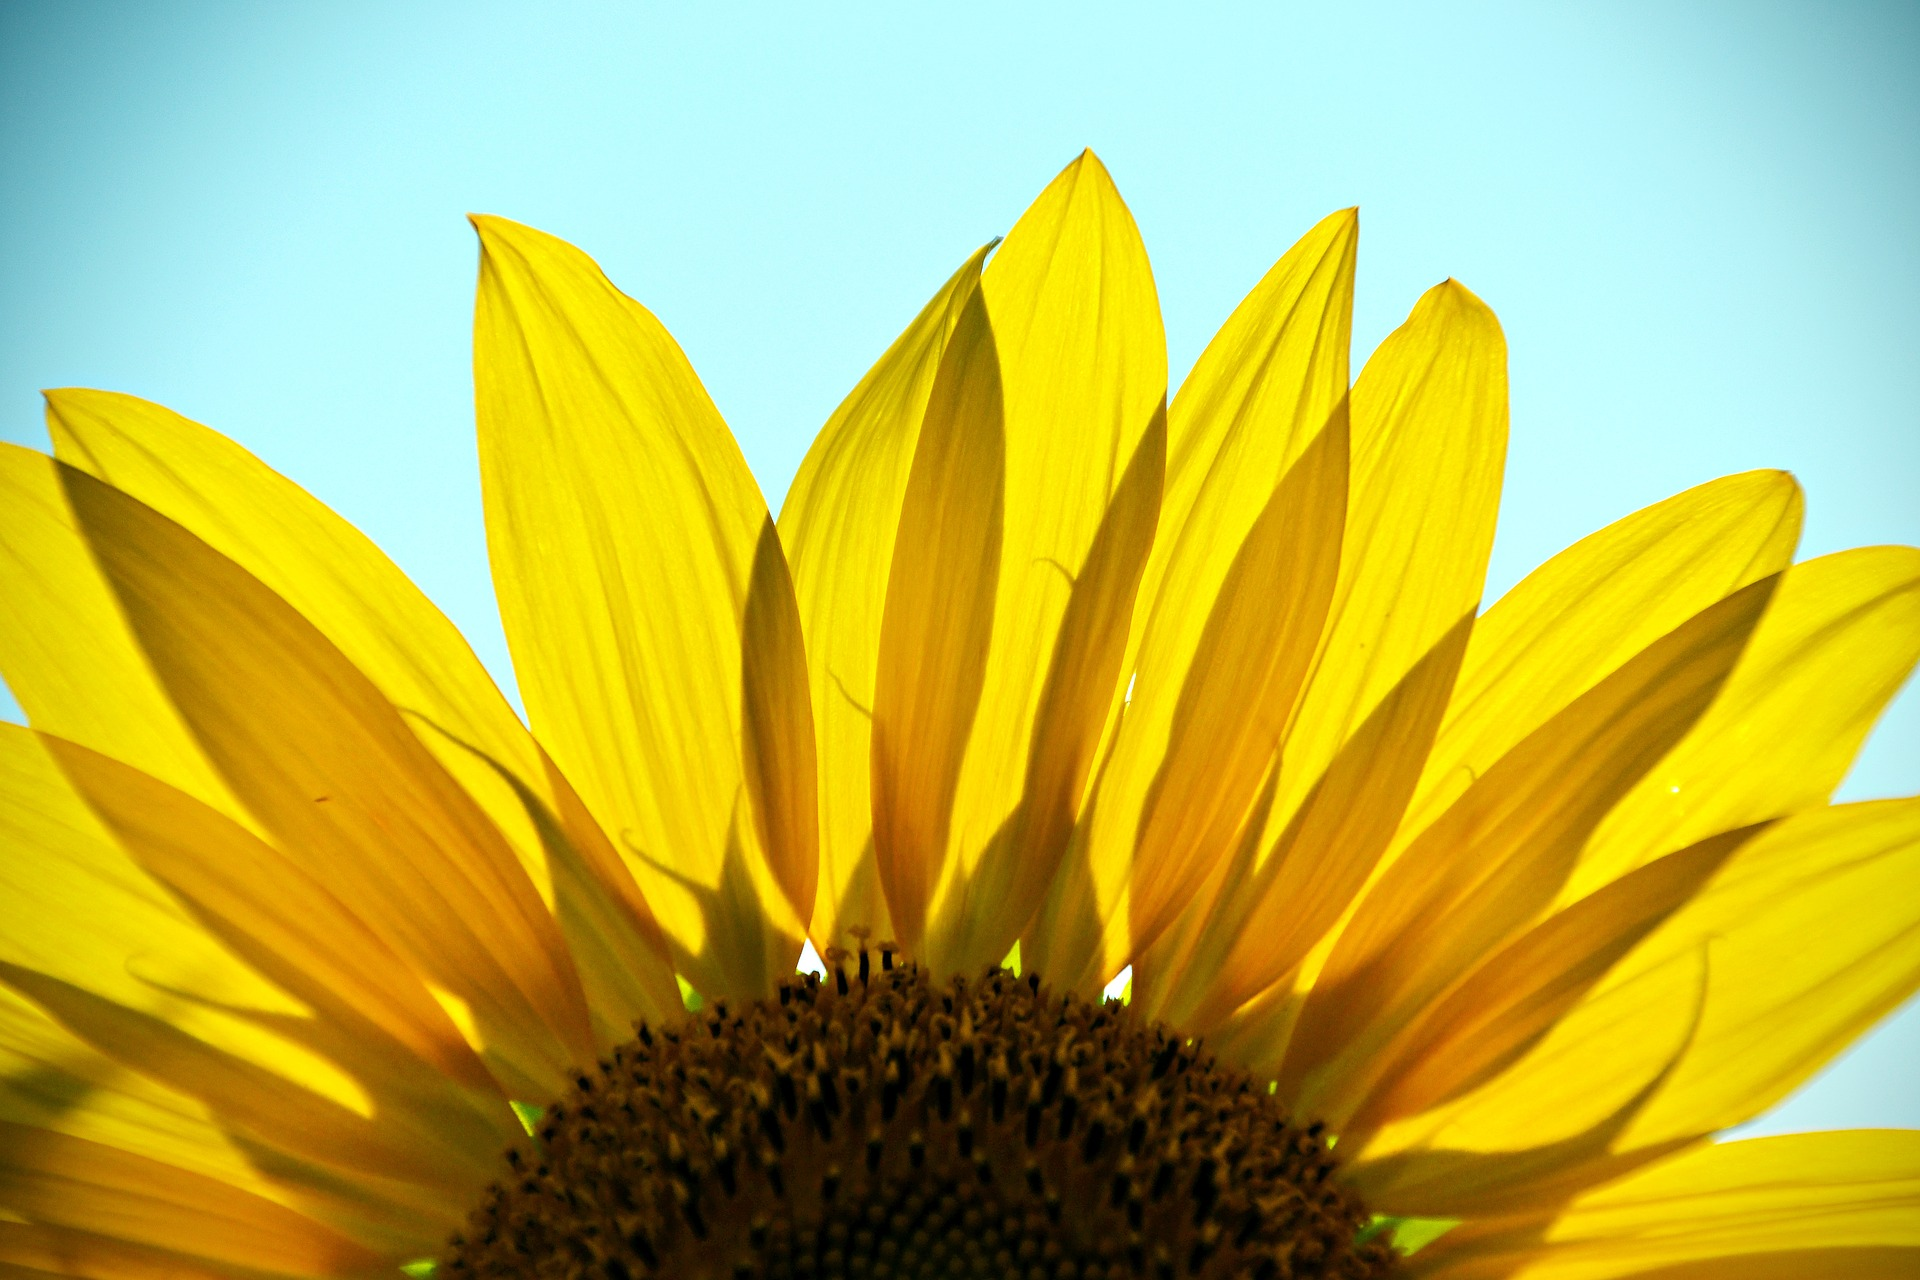 Find your Sunshine - here is a sunflower